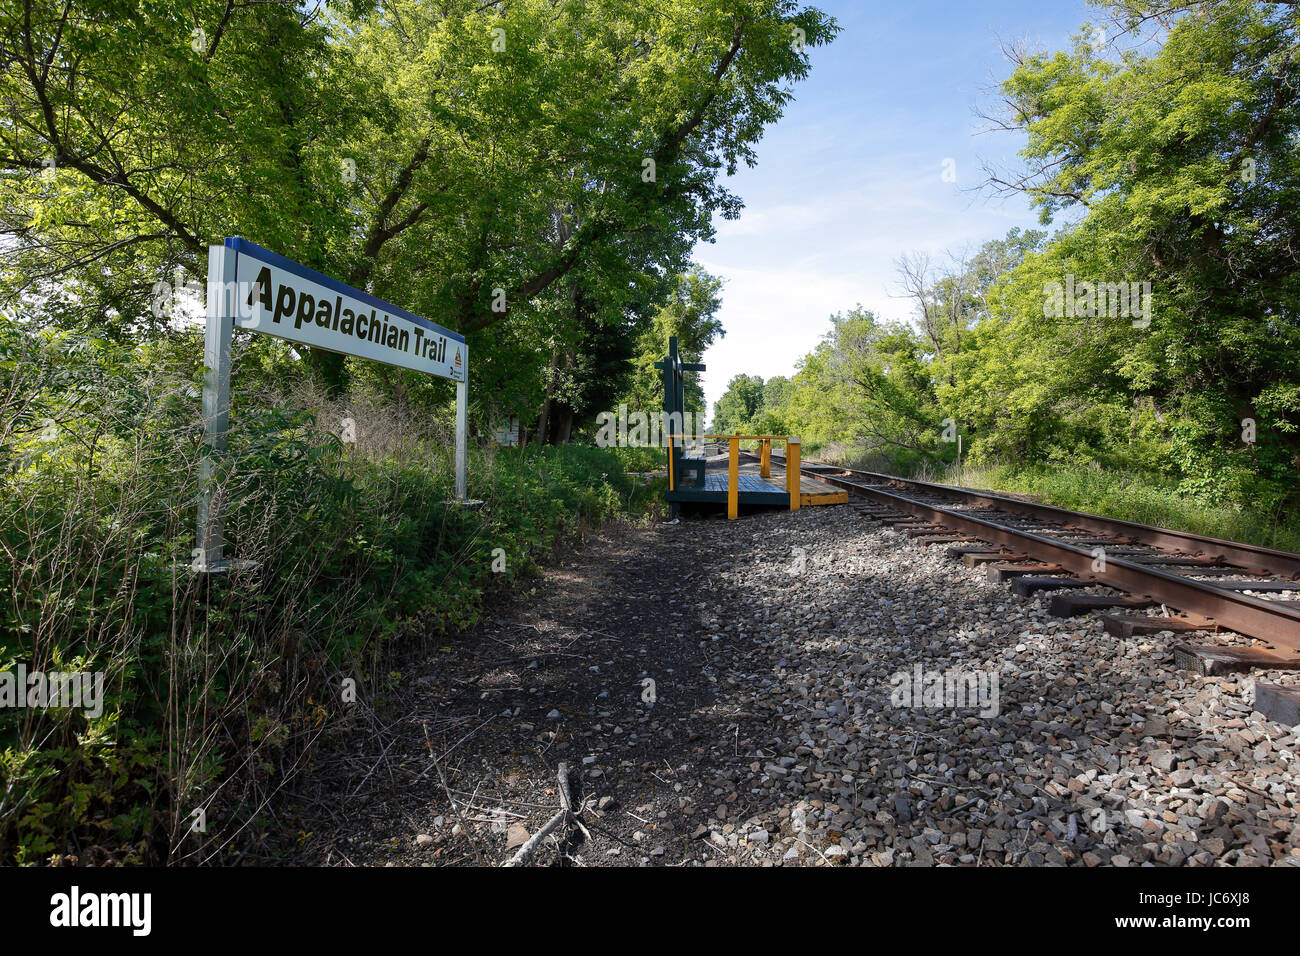 Train Station On The Appalachian Trail In Pawling Ny Stock